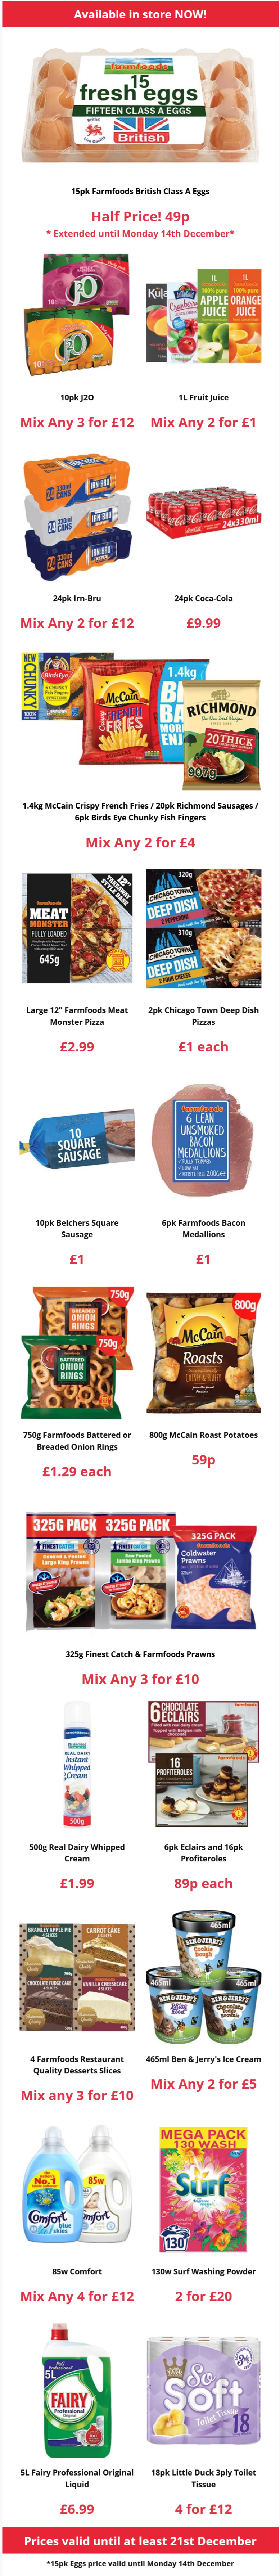 Farmfoods Offers Valid until at least 21st December 2020